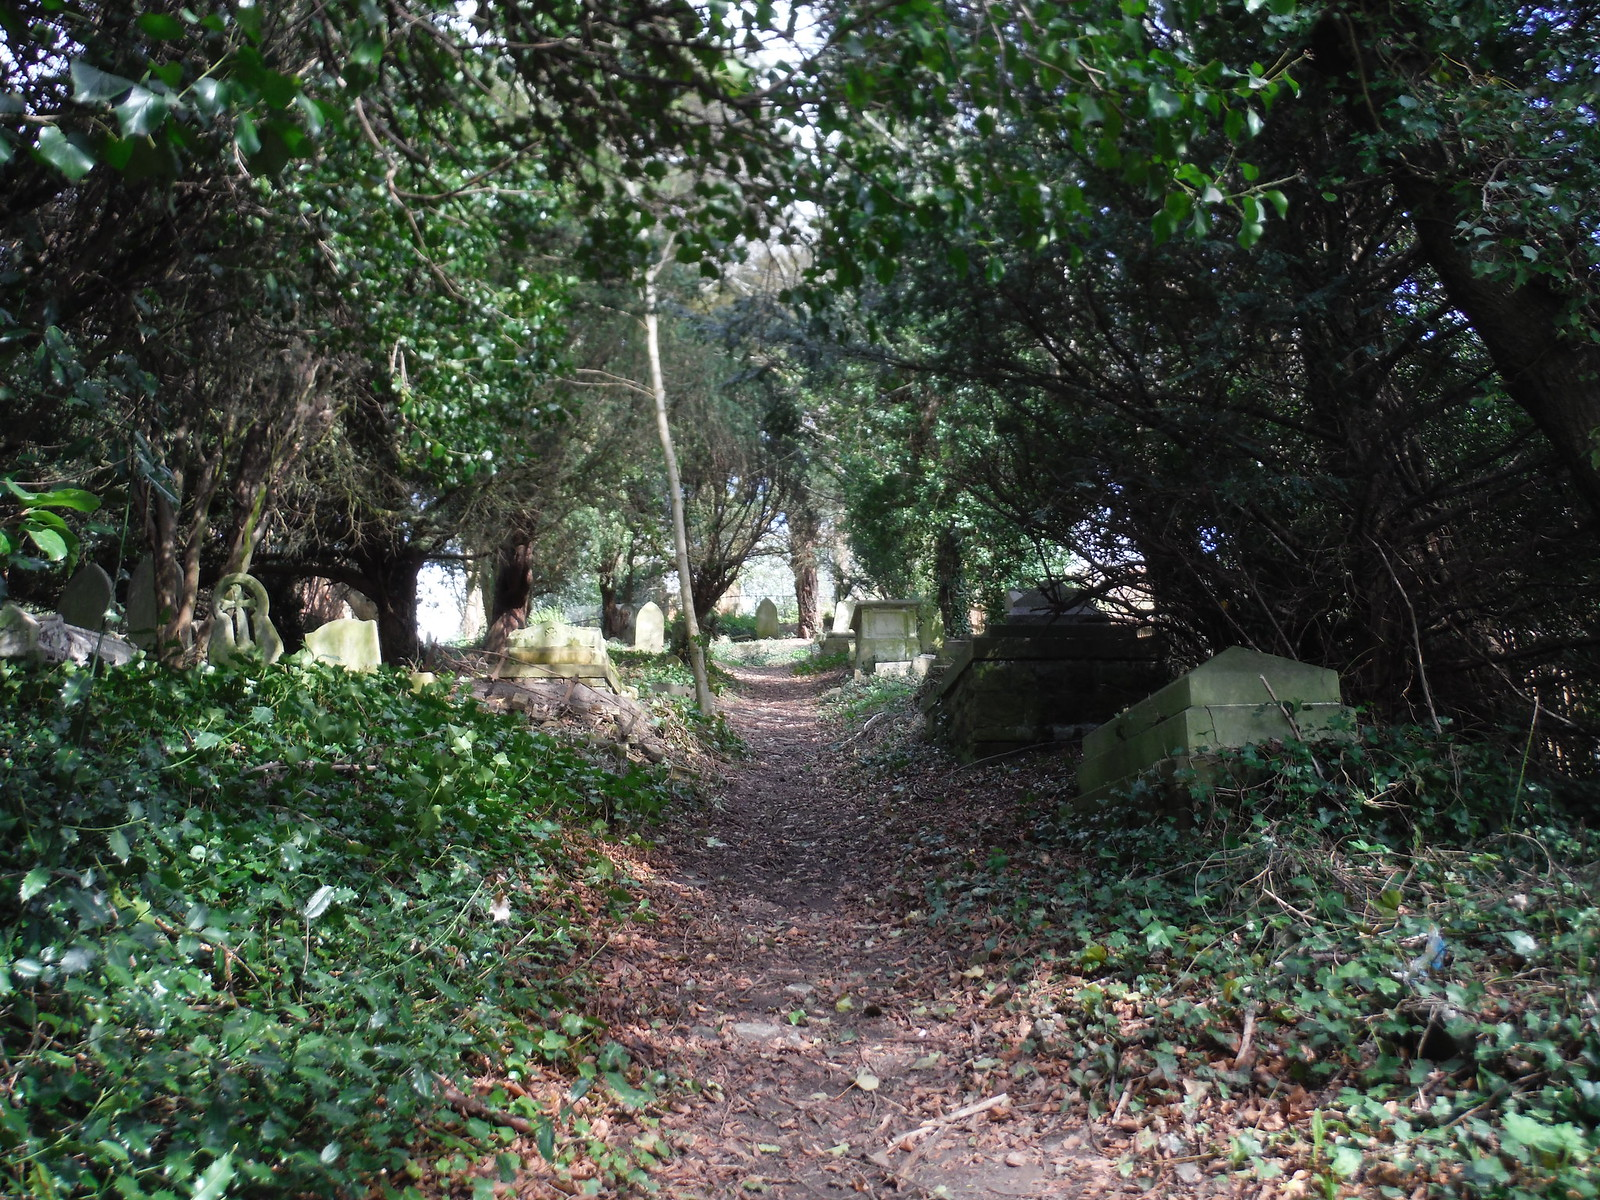 Path through the Hanging Cemetery SWC Short Walk 40 - Harrow-on-the-Hill (South Kenton or Northwick Park to Harrow-on-the-Hill)